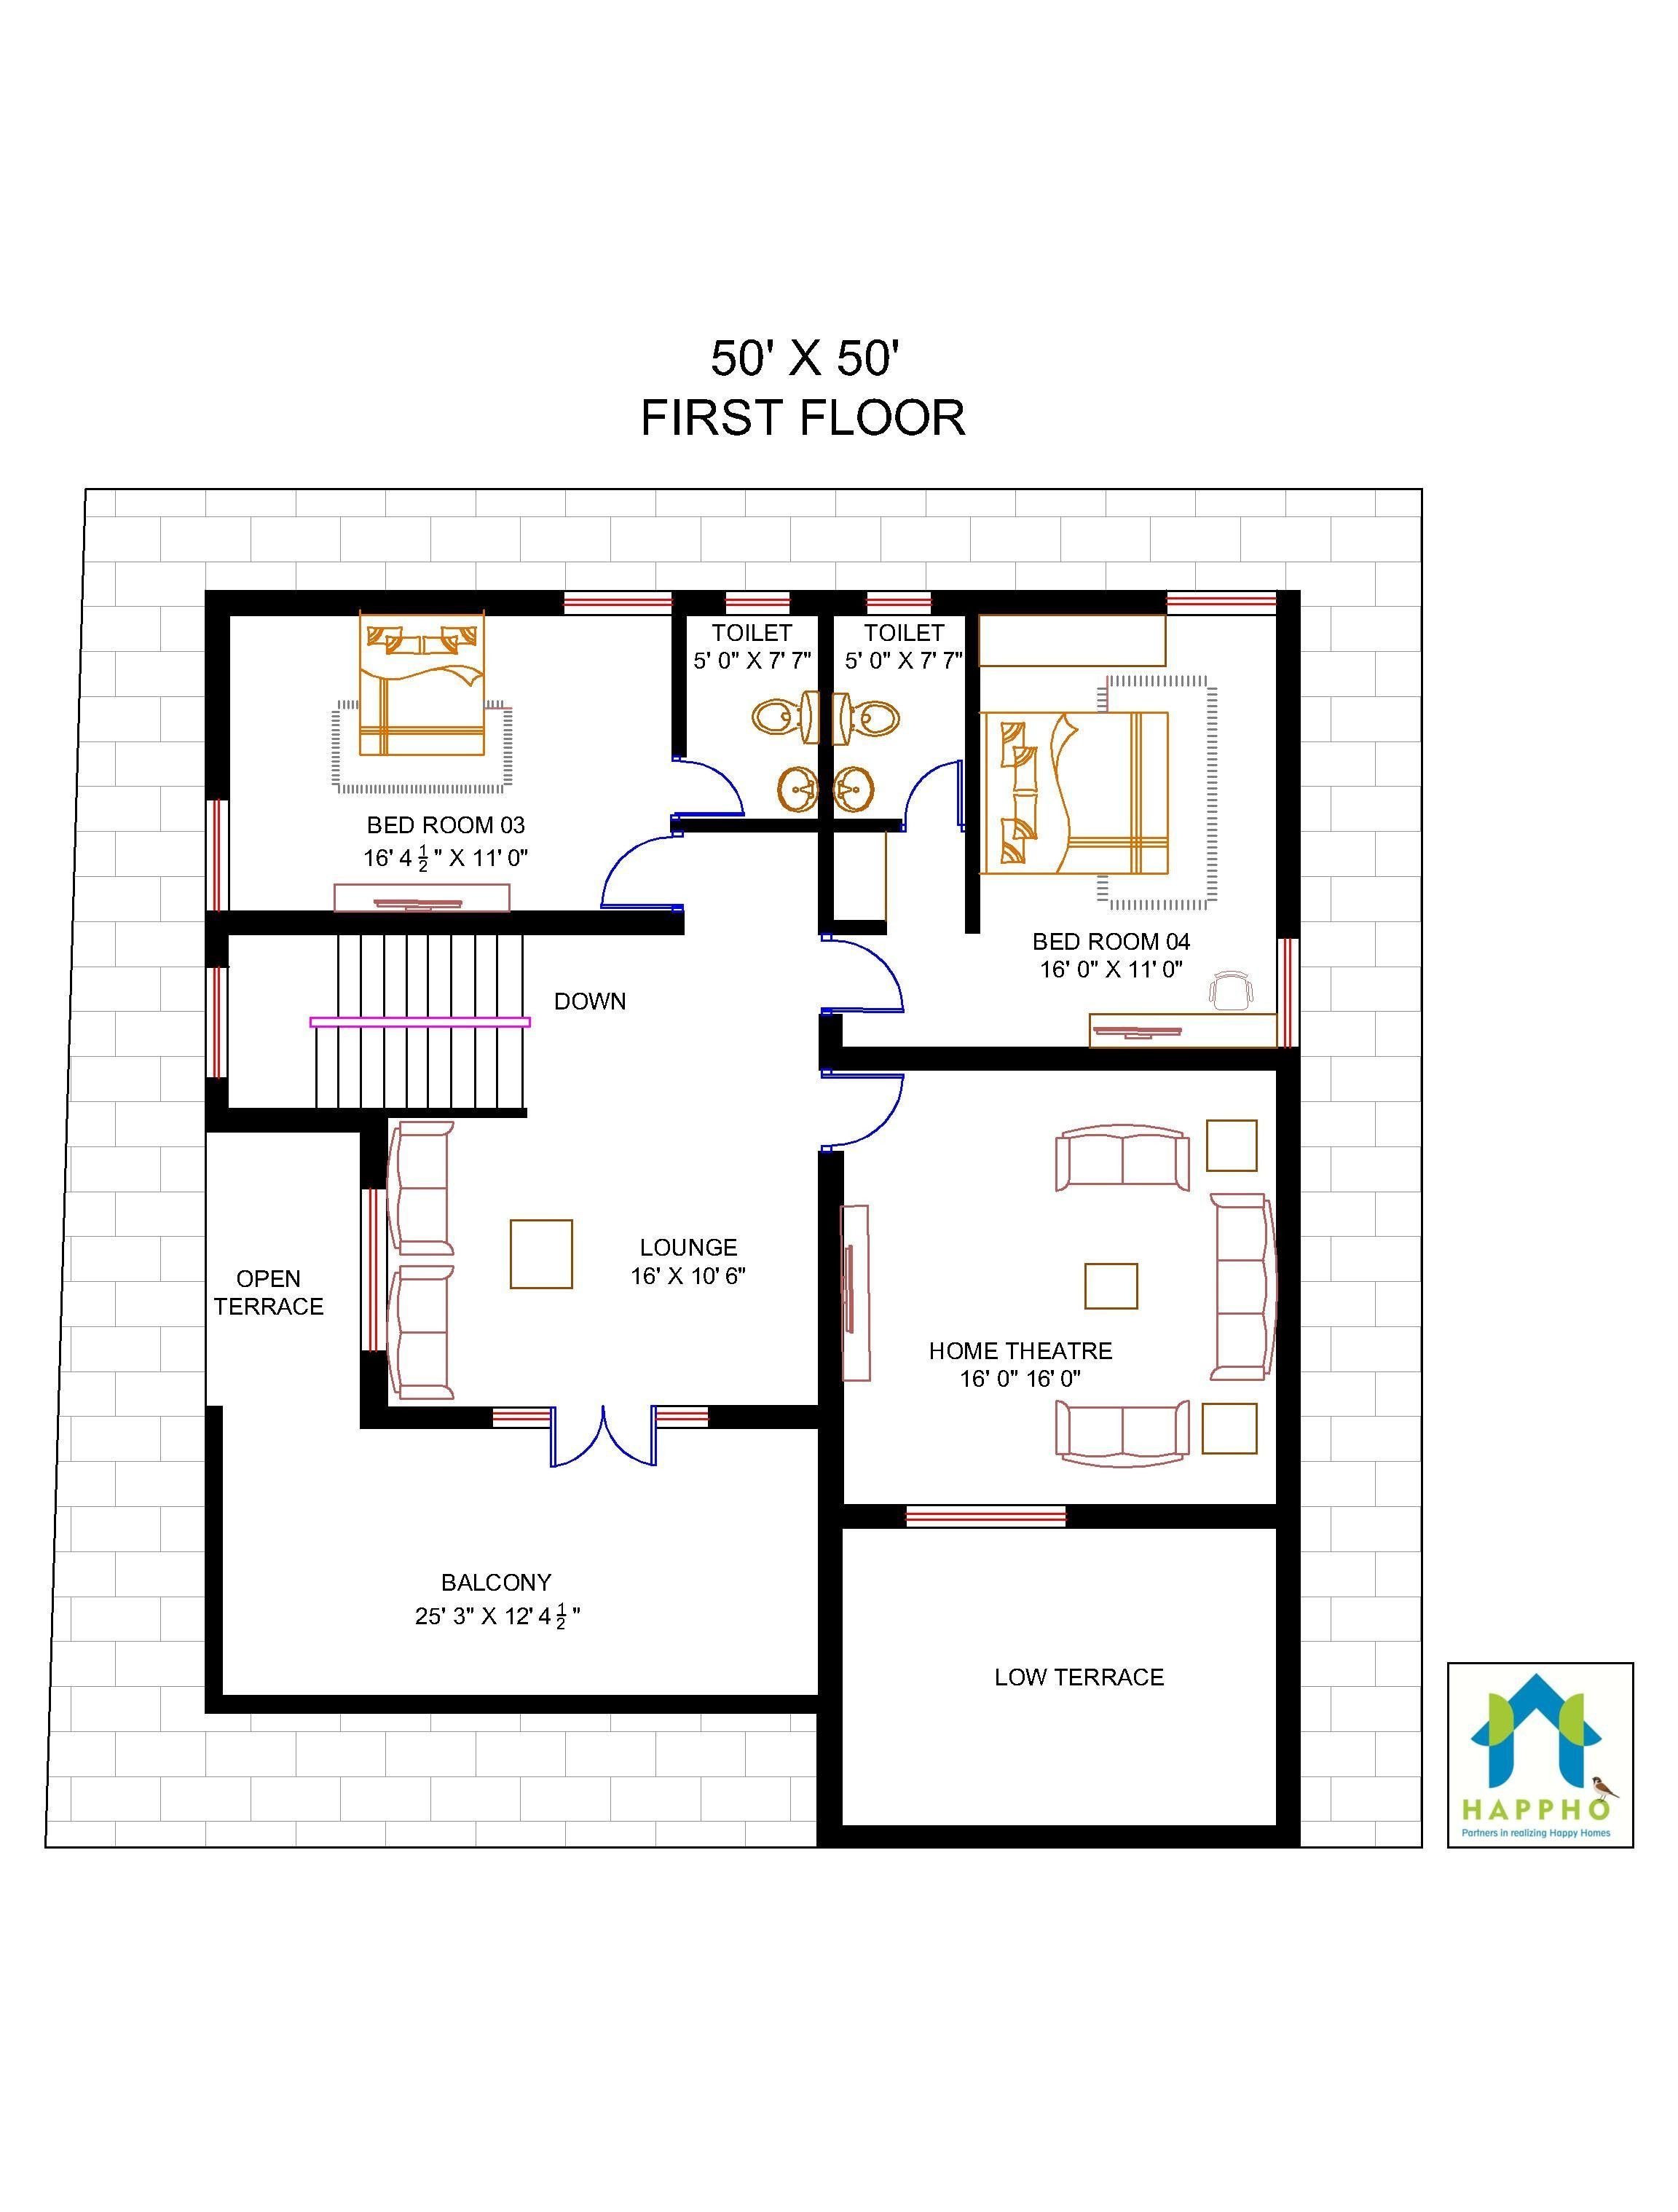 House Plans and Prices to Build Inspirational Floor Plan for 50 X 50 Plot